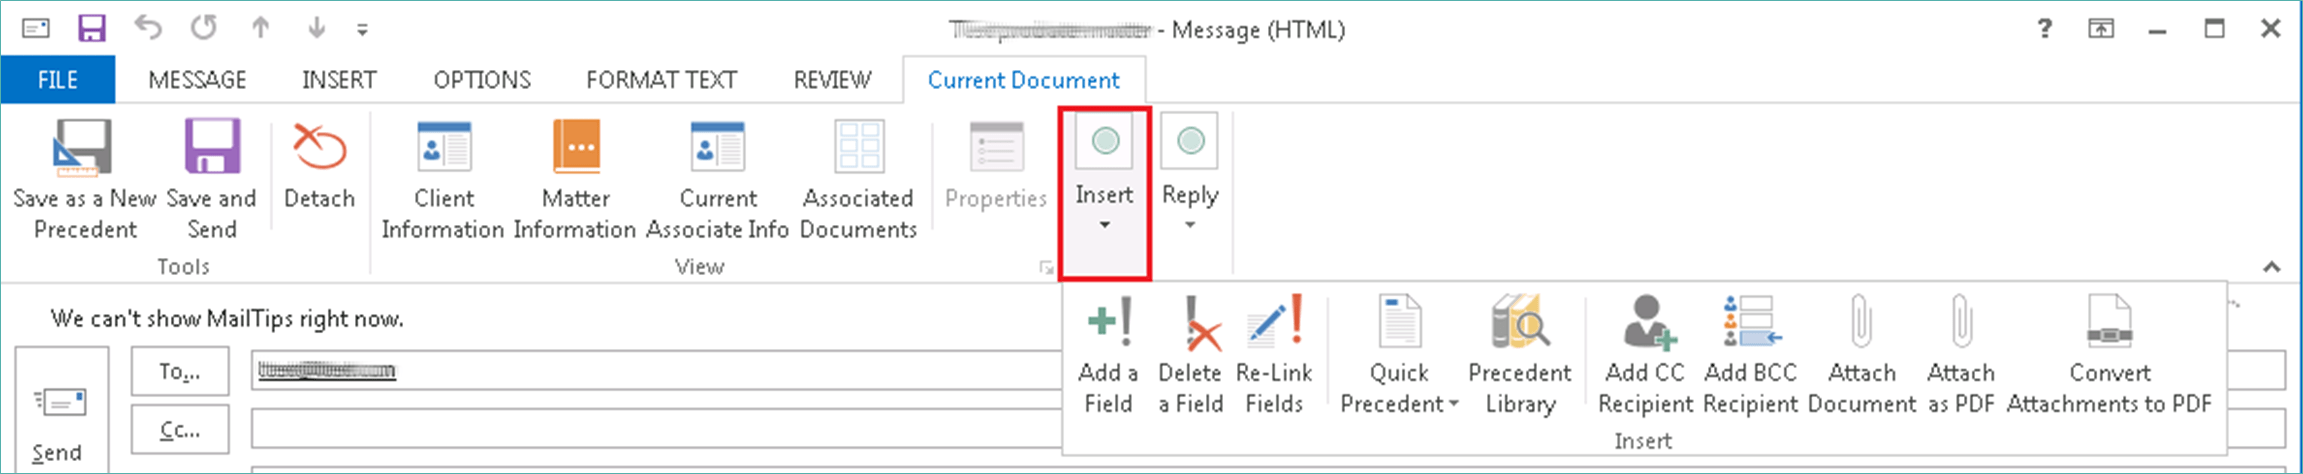 Emailing as PDF 1